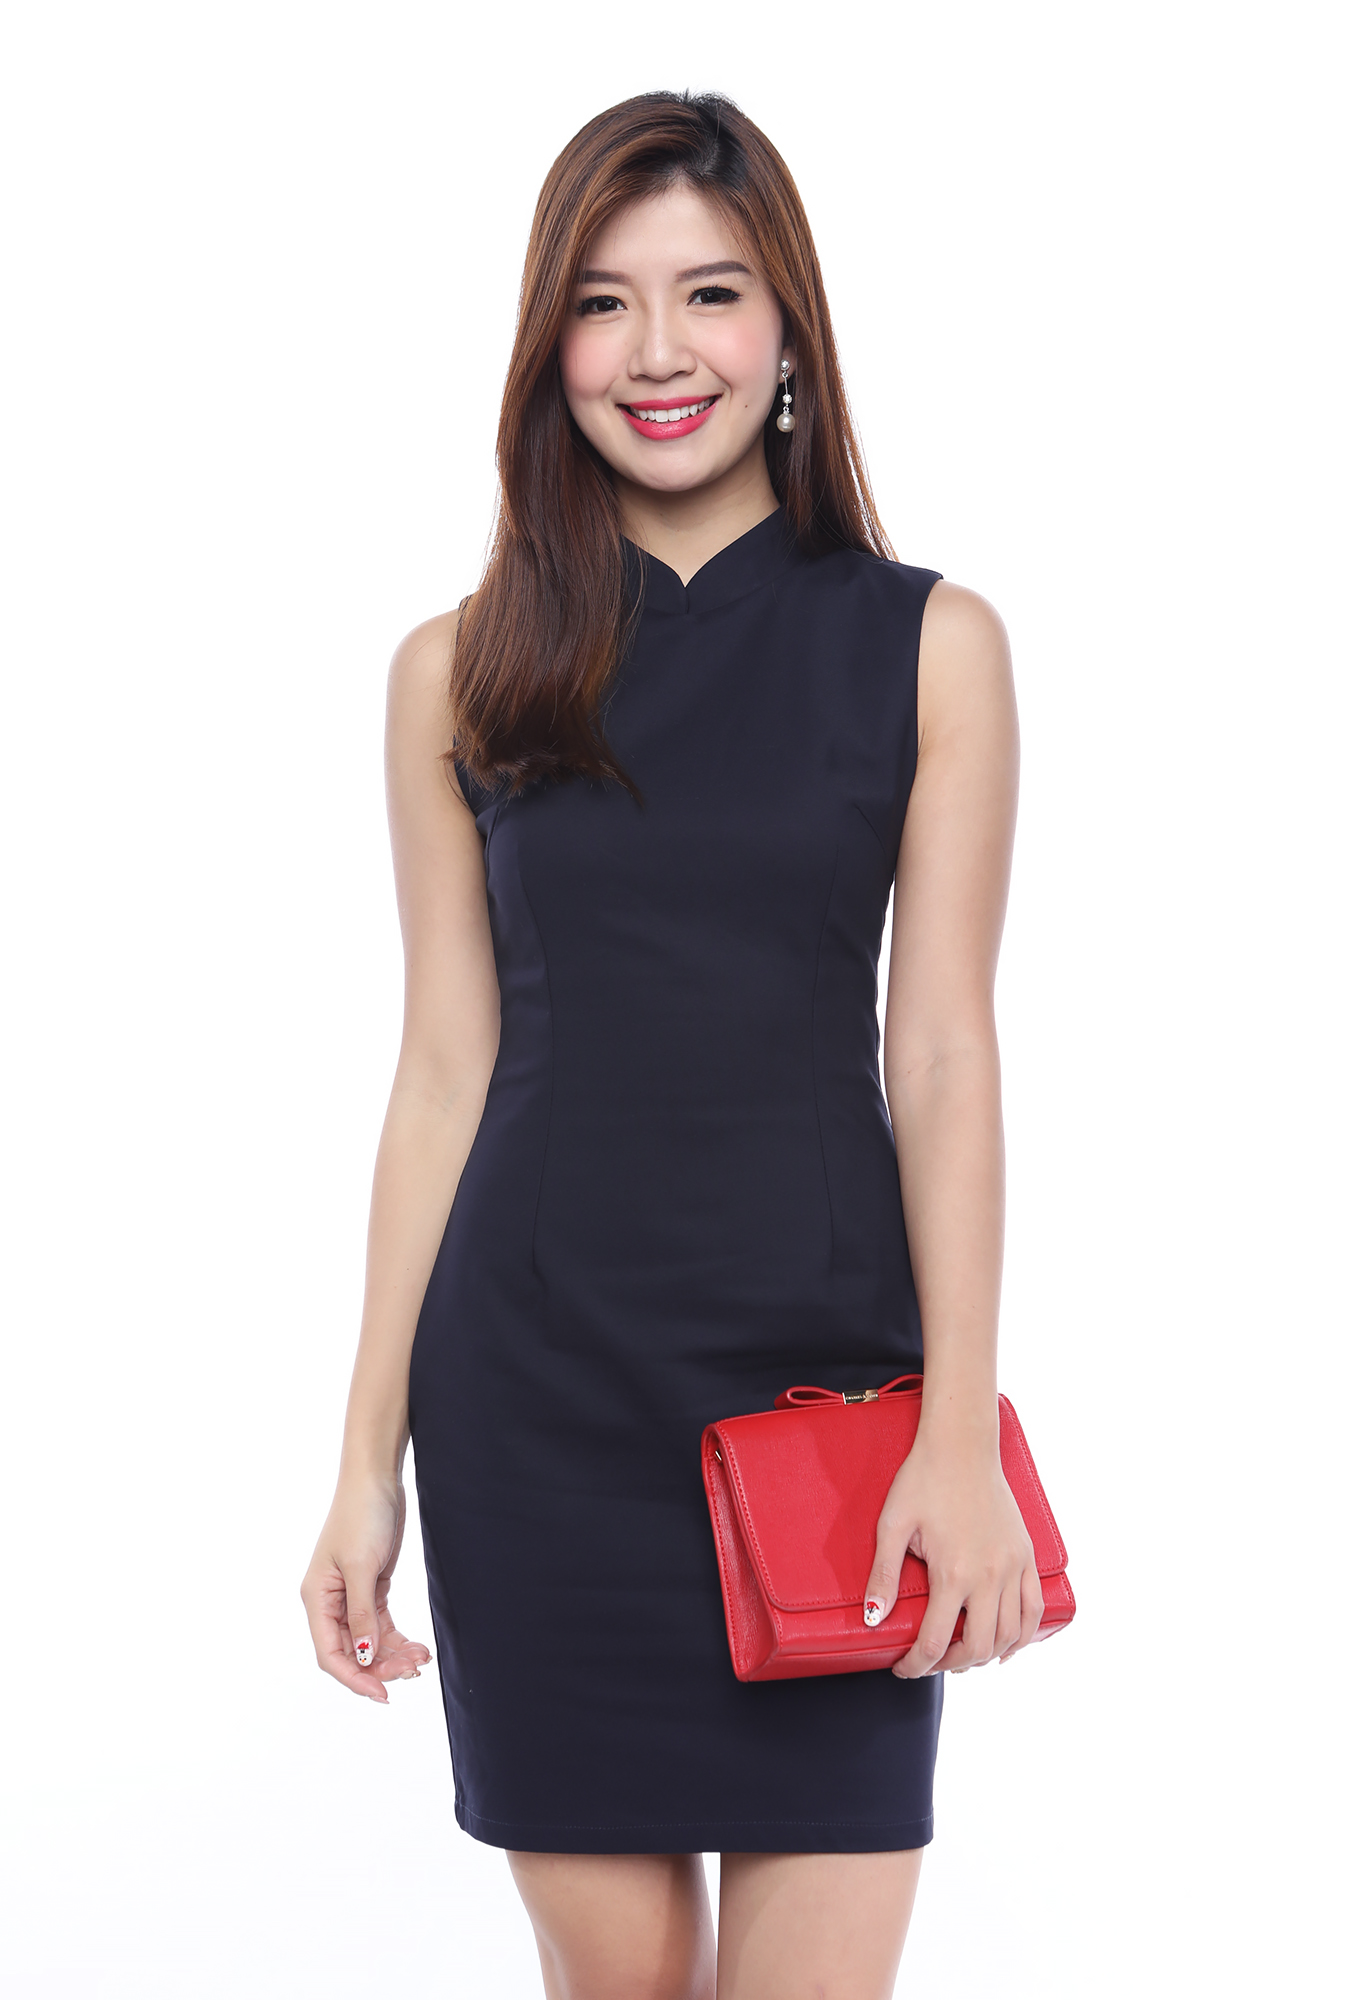 Get This Dress And Accessories At Its Fashion Metro In: Abundant Blessings Mandarin Collar Dress In Navy